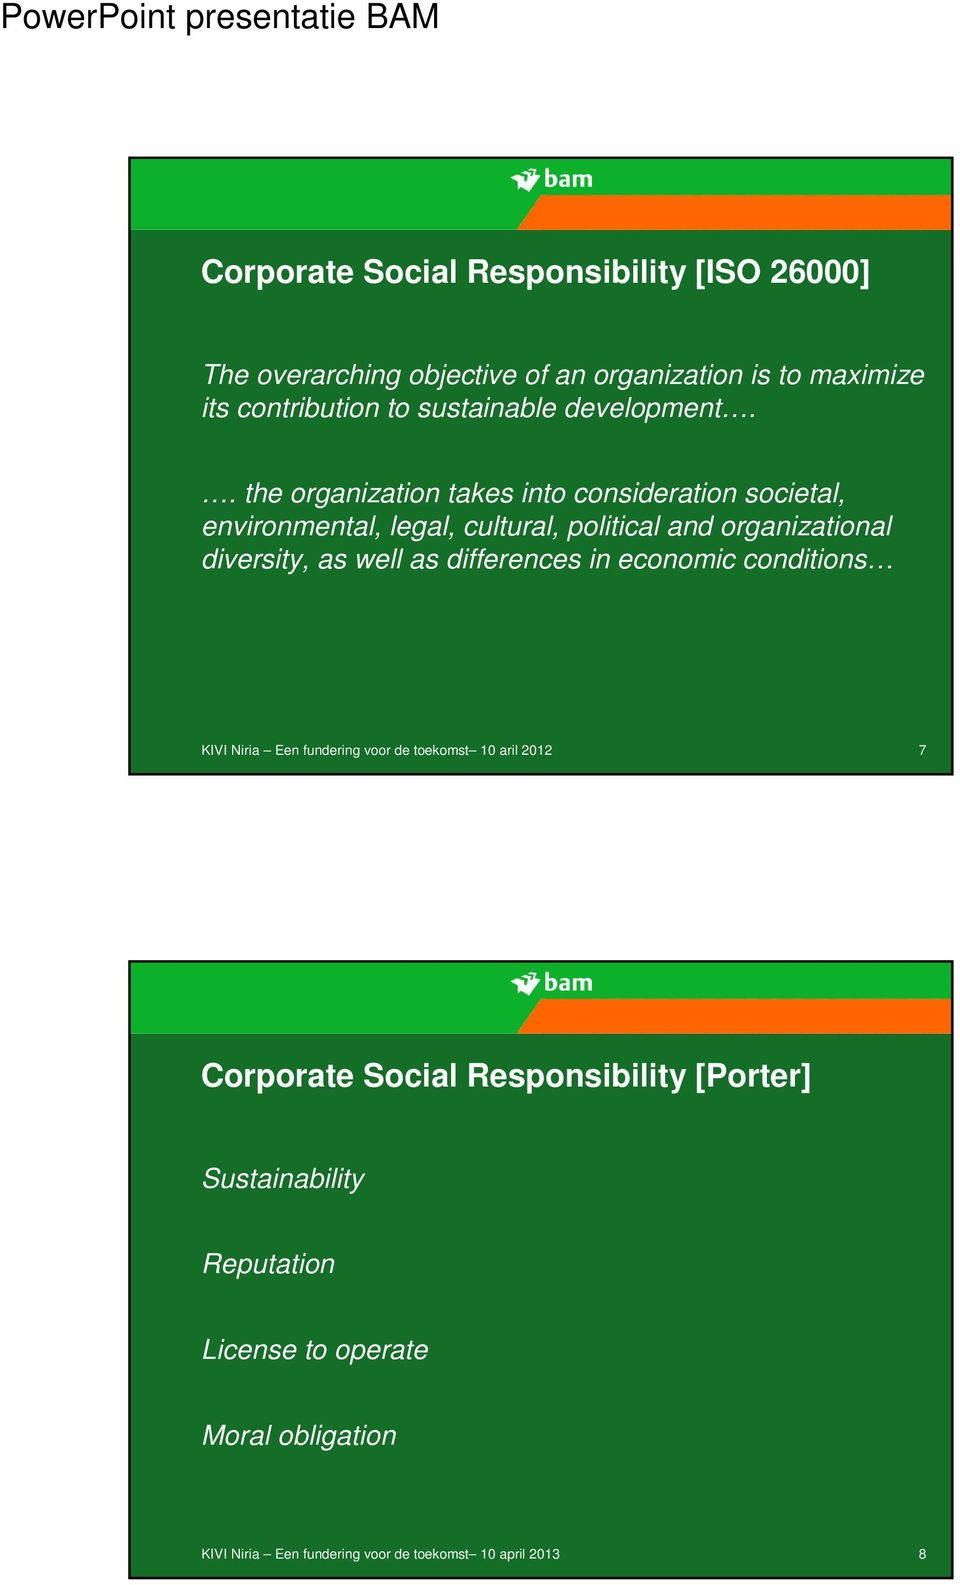 . the organization takes into consideration societal, environmental, legal, cultural, political and organizational